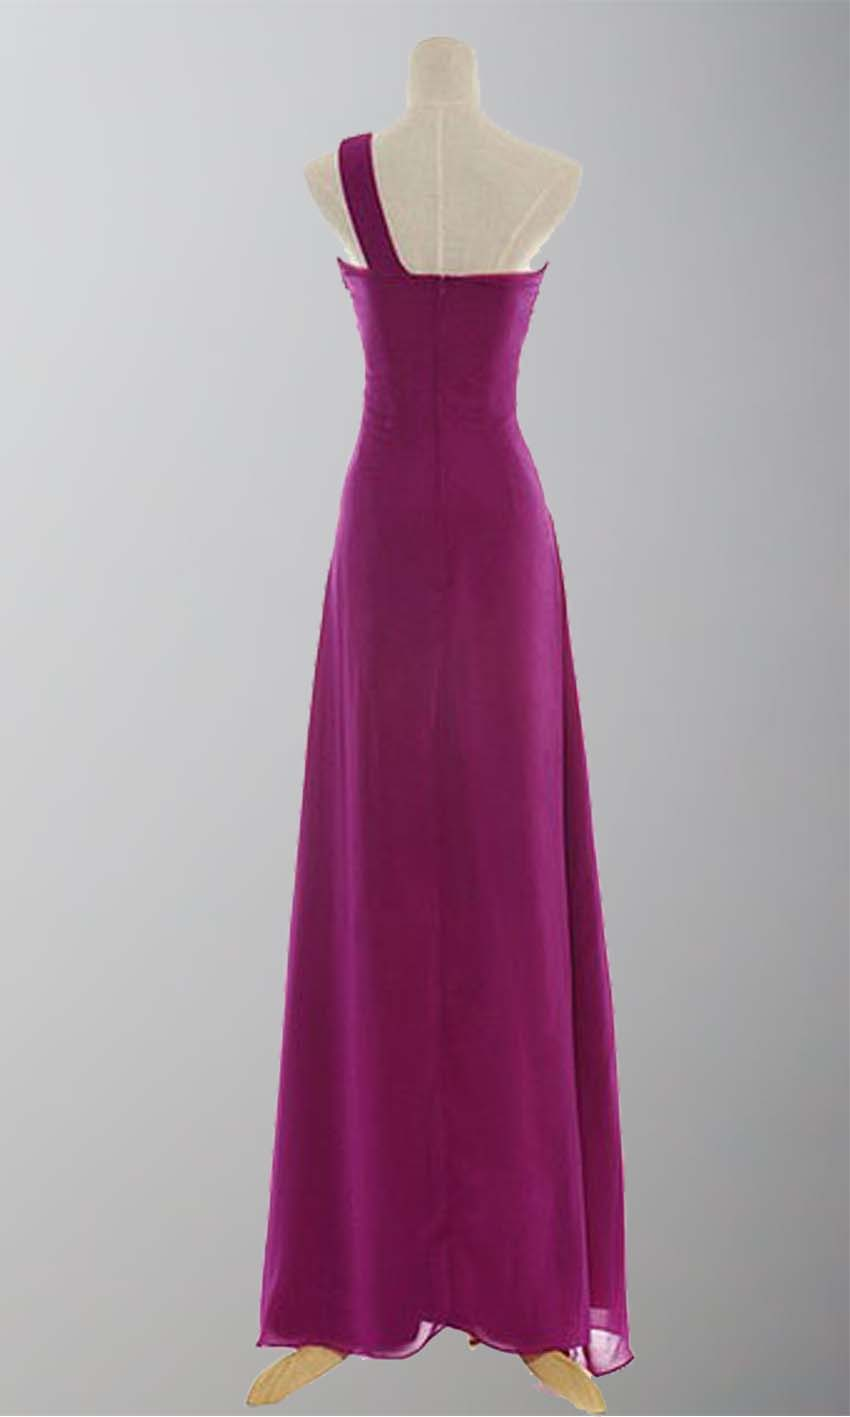 Plum Sequined One Shoulder A-line Evening Dress KSP027 [KSP027] - £100.00 : Cheap Prom Dresses Uk, Bridesmaid Dresses, 2014 Prom & Evening Dresses, Look for cheap elegant prom dresses 2014, cocktail gowns, or dresses for special occasions? kissprom.co.uk offers various bridesmaid dresses, evening dress, free shipping to UK etc.